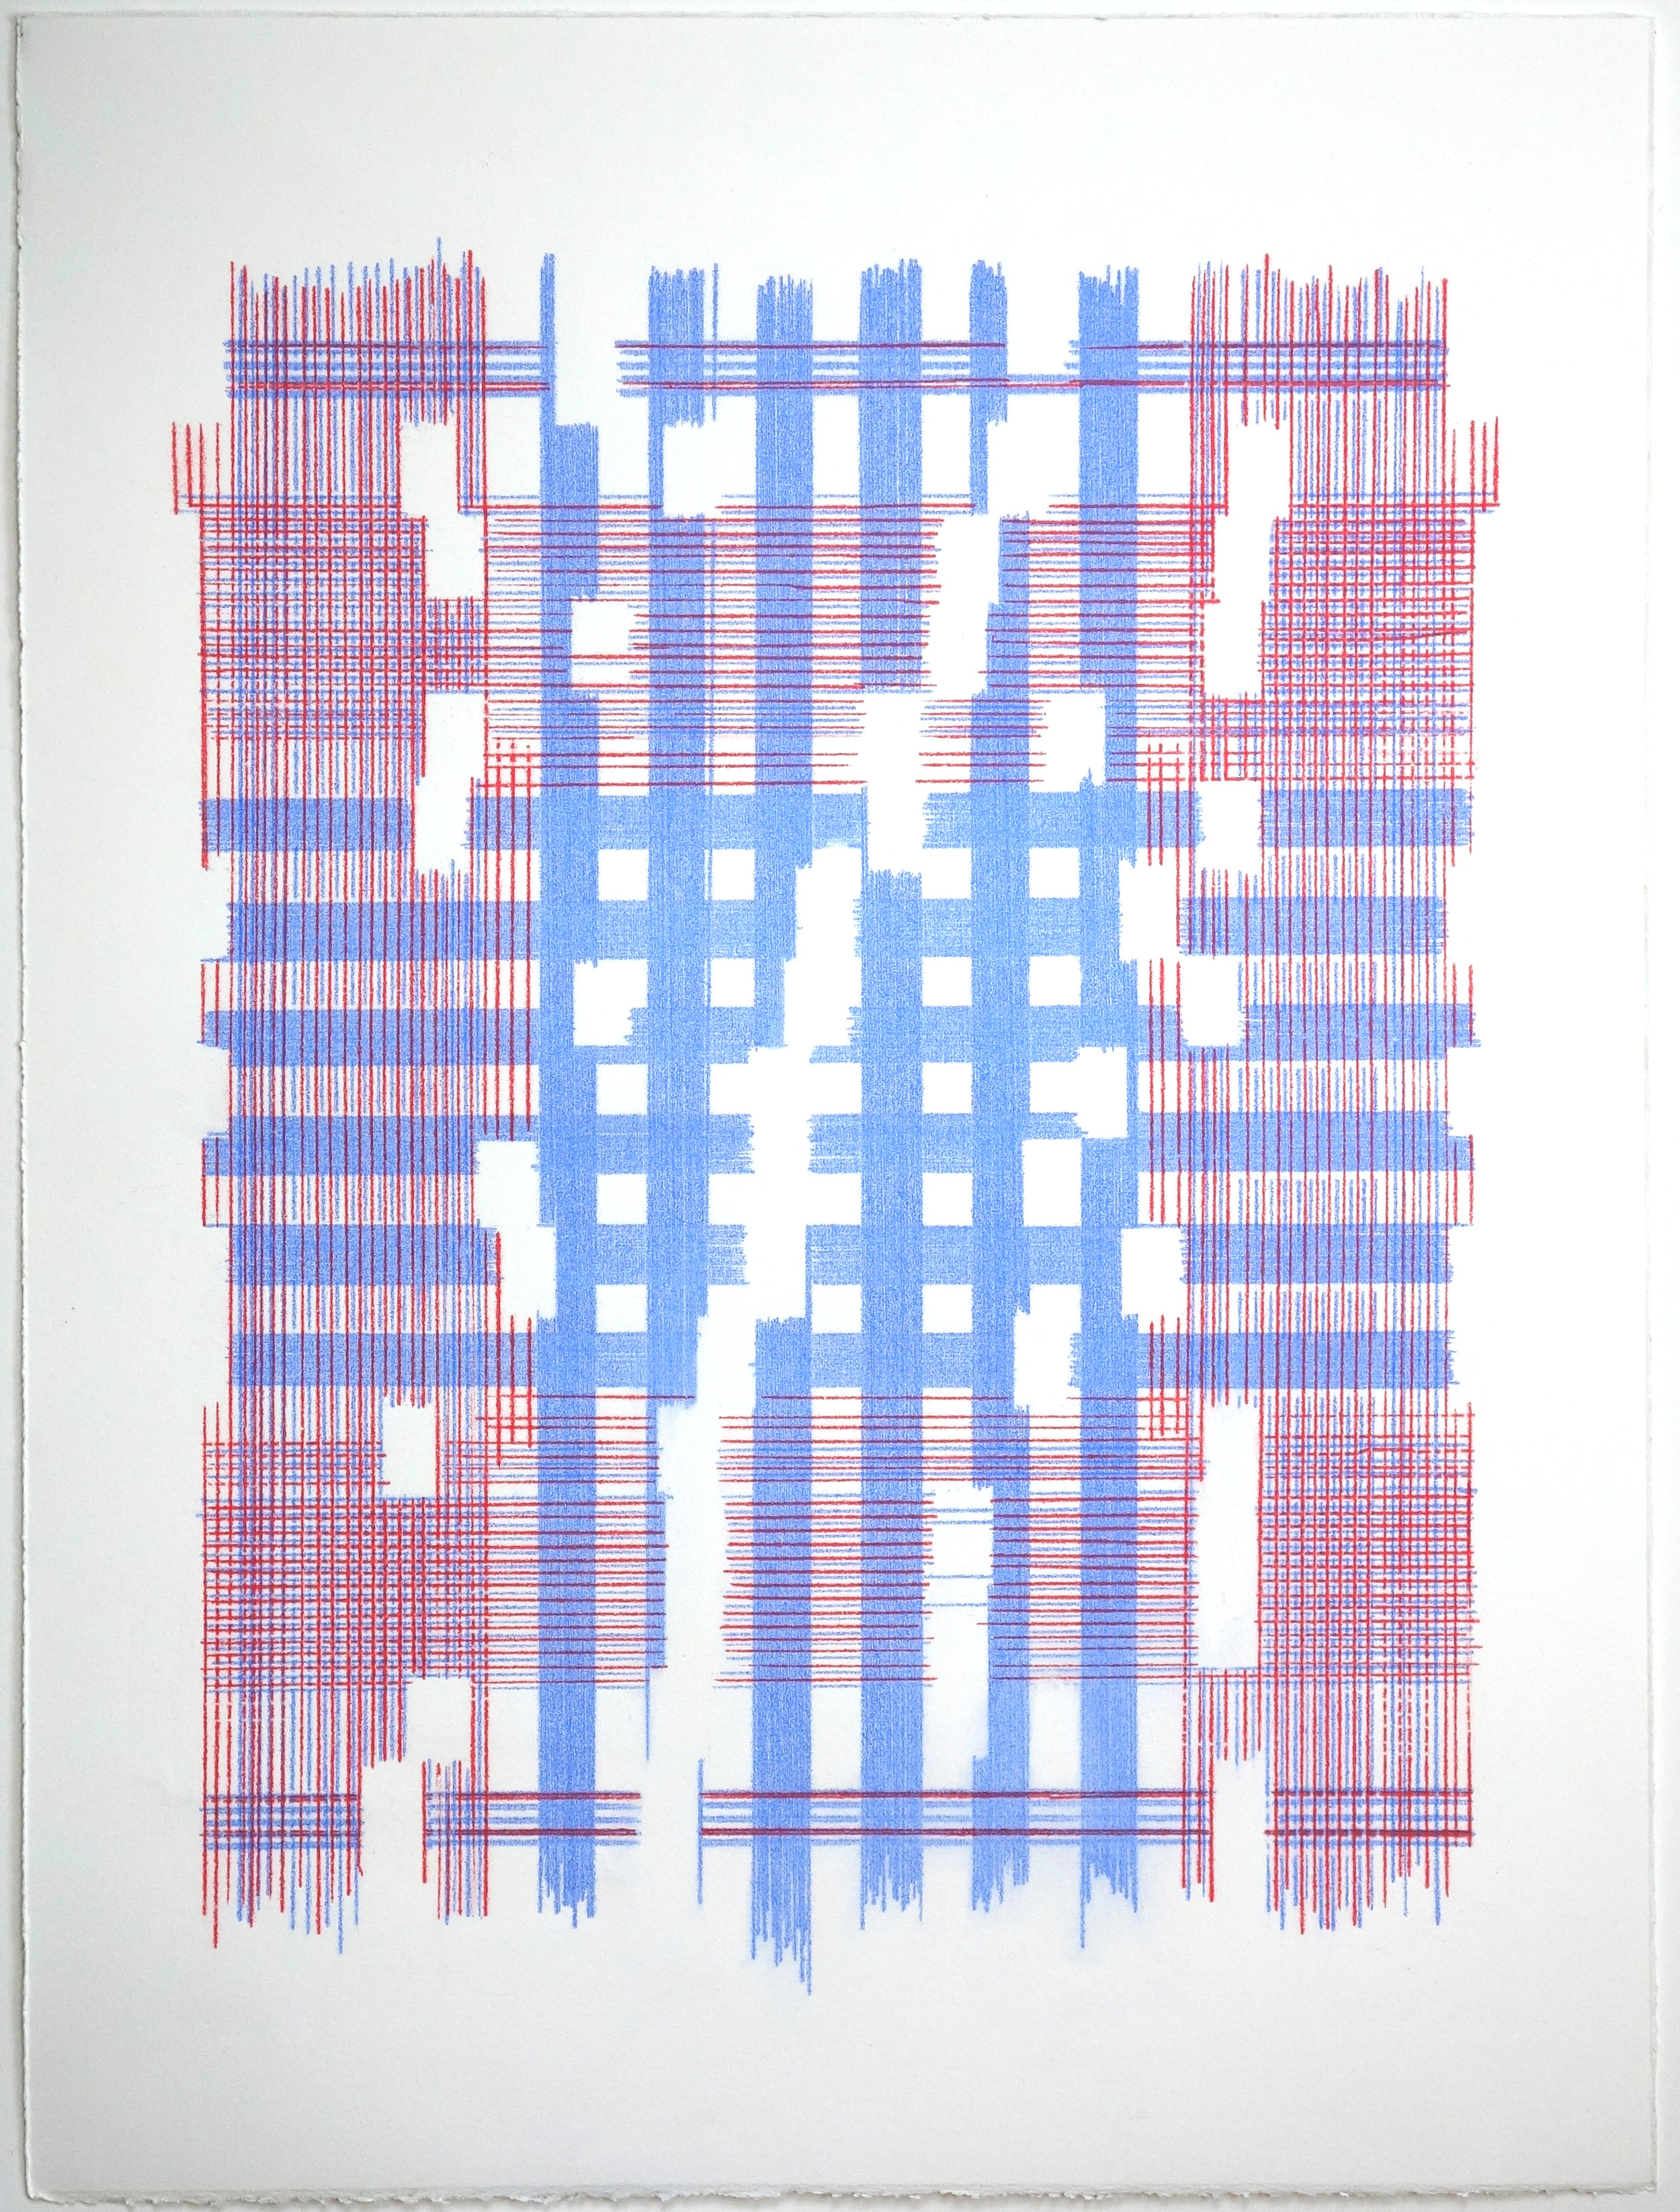 The Most Mysterious Fact (Plaid), 2018 Transfer pigment on paper; 15 x 20 inches